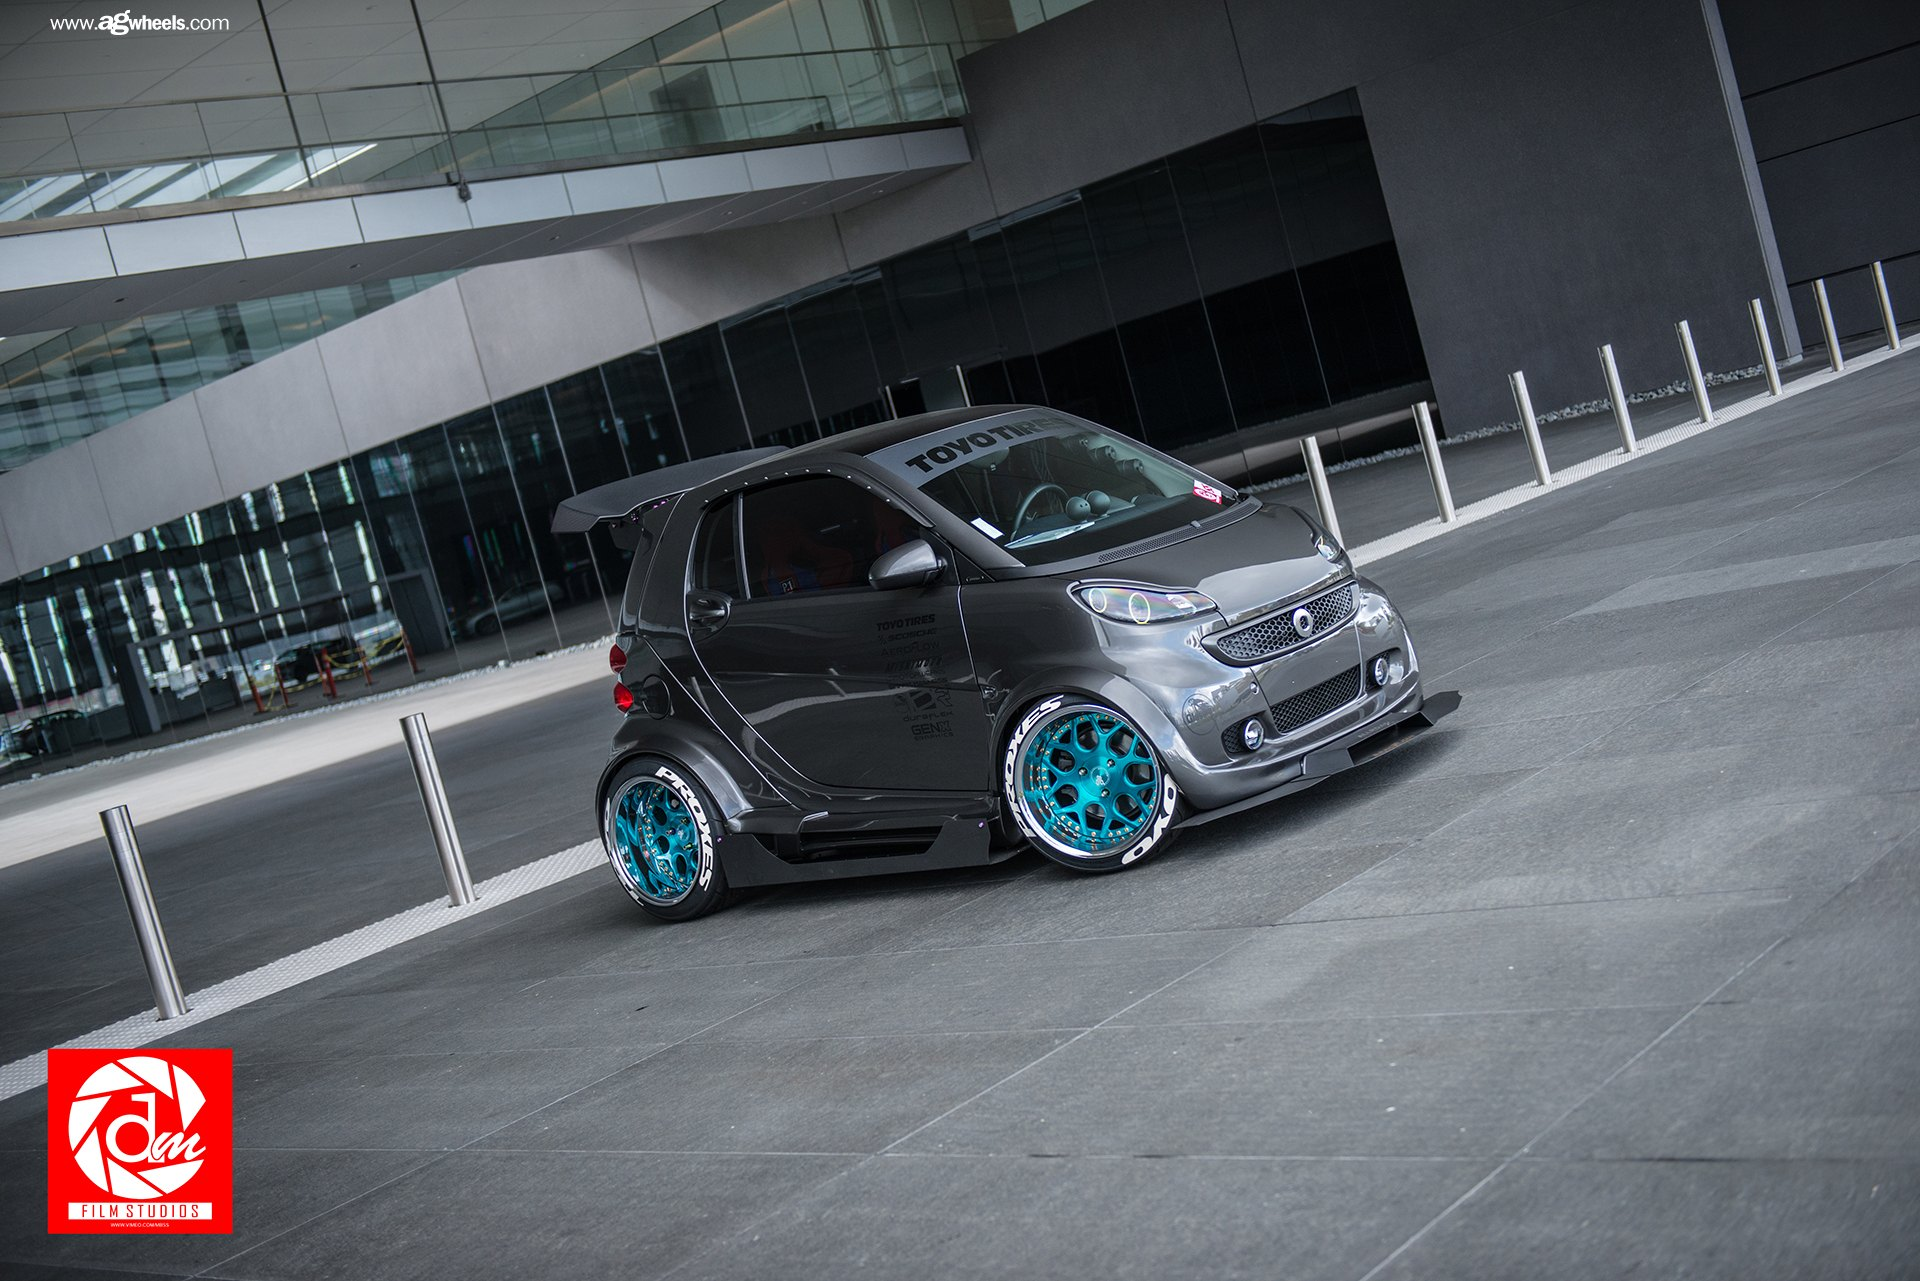 Gray Smart Car Fortwo With Ultra Modern Touch With Custom Body Kit